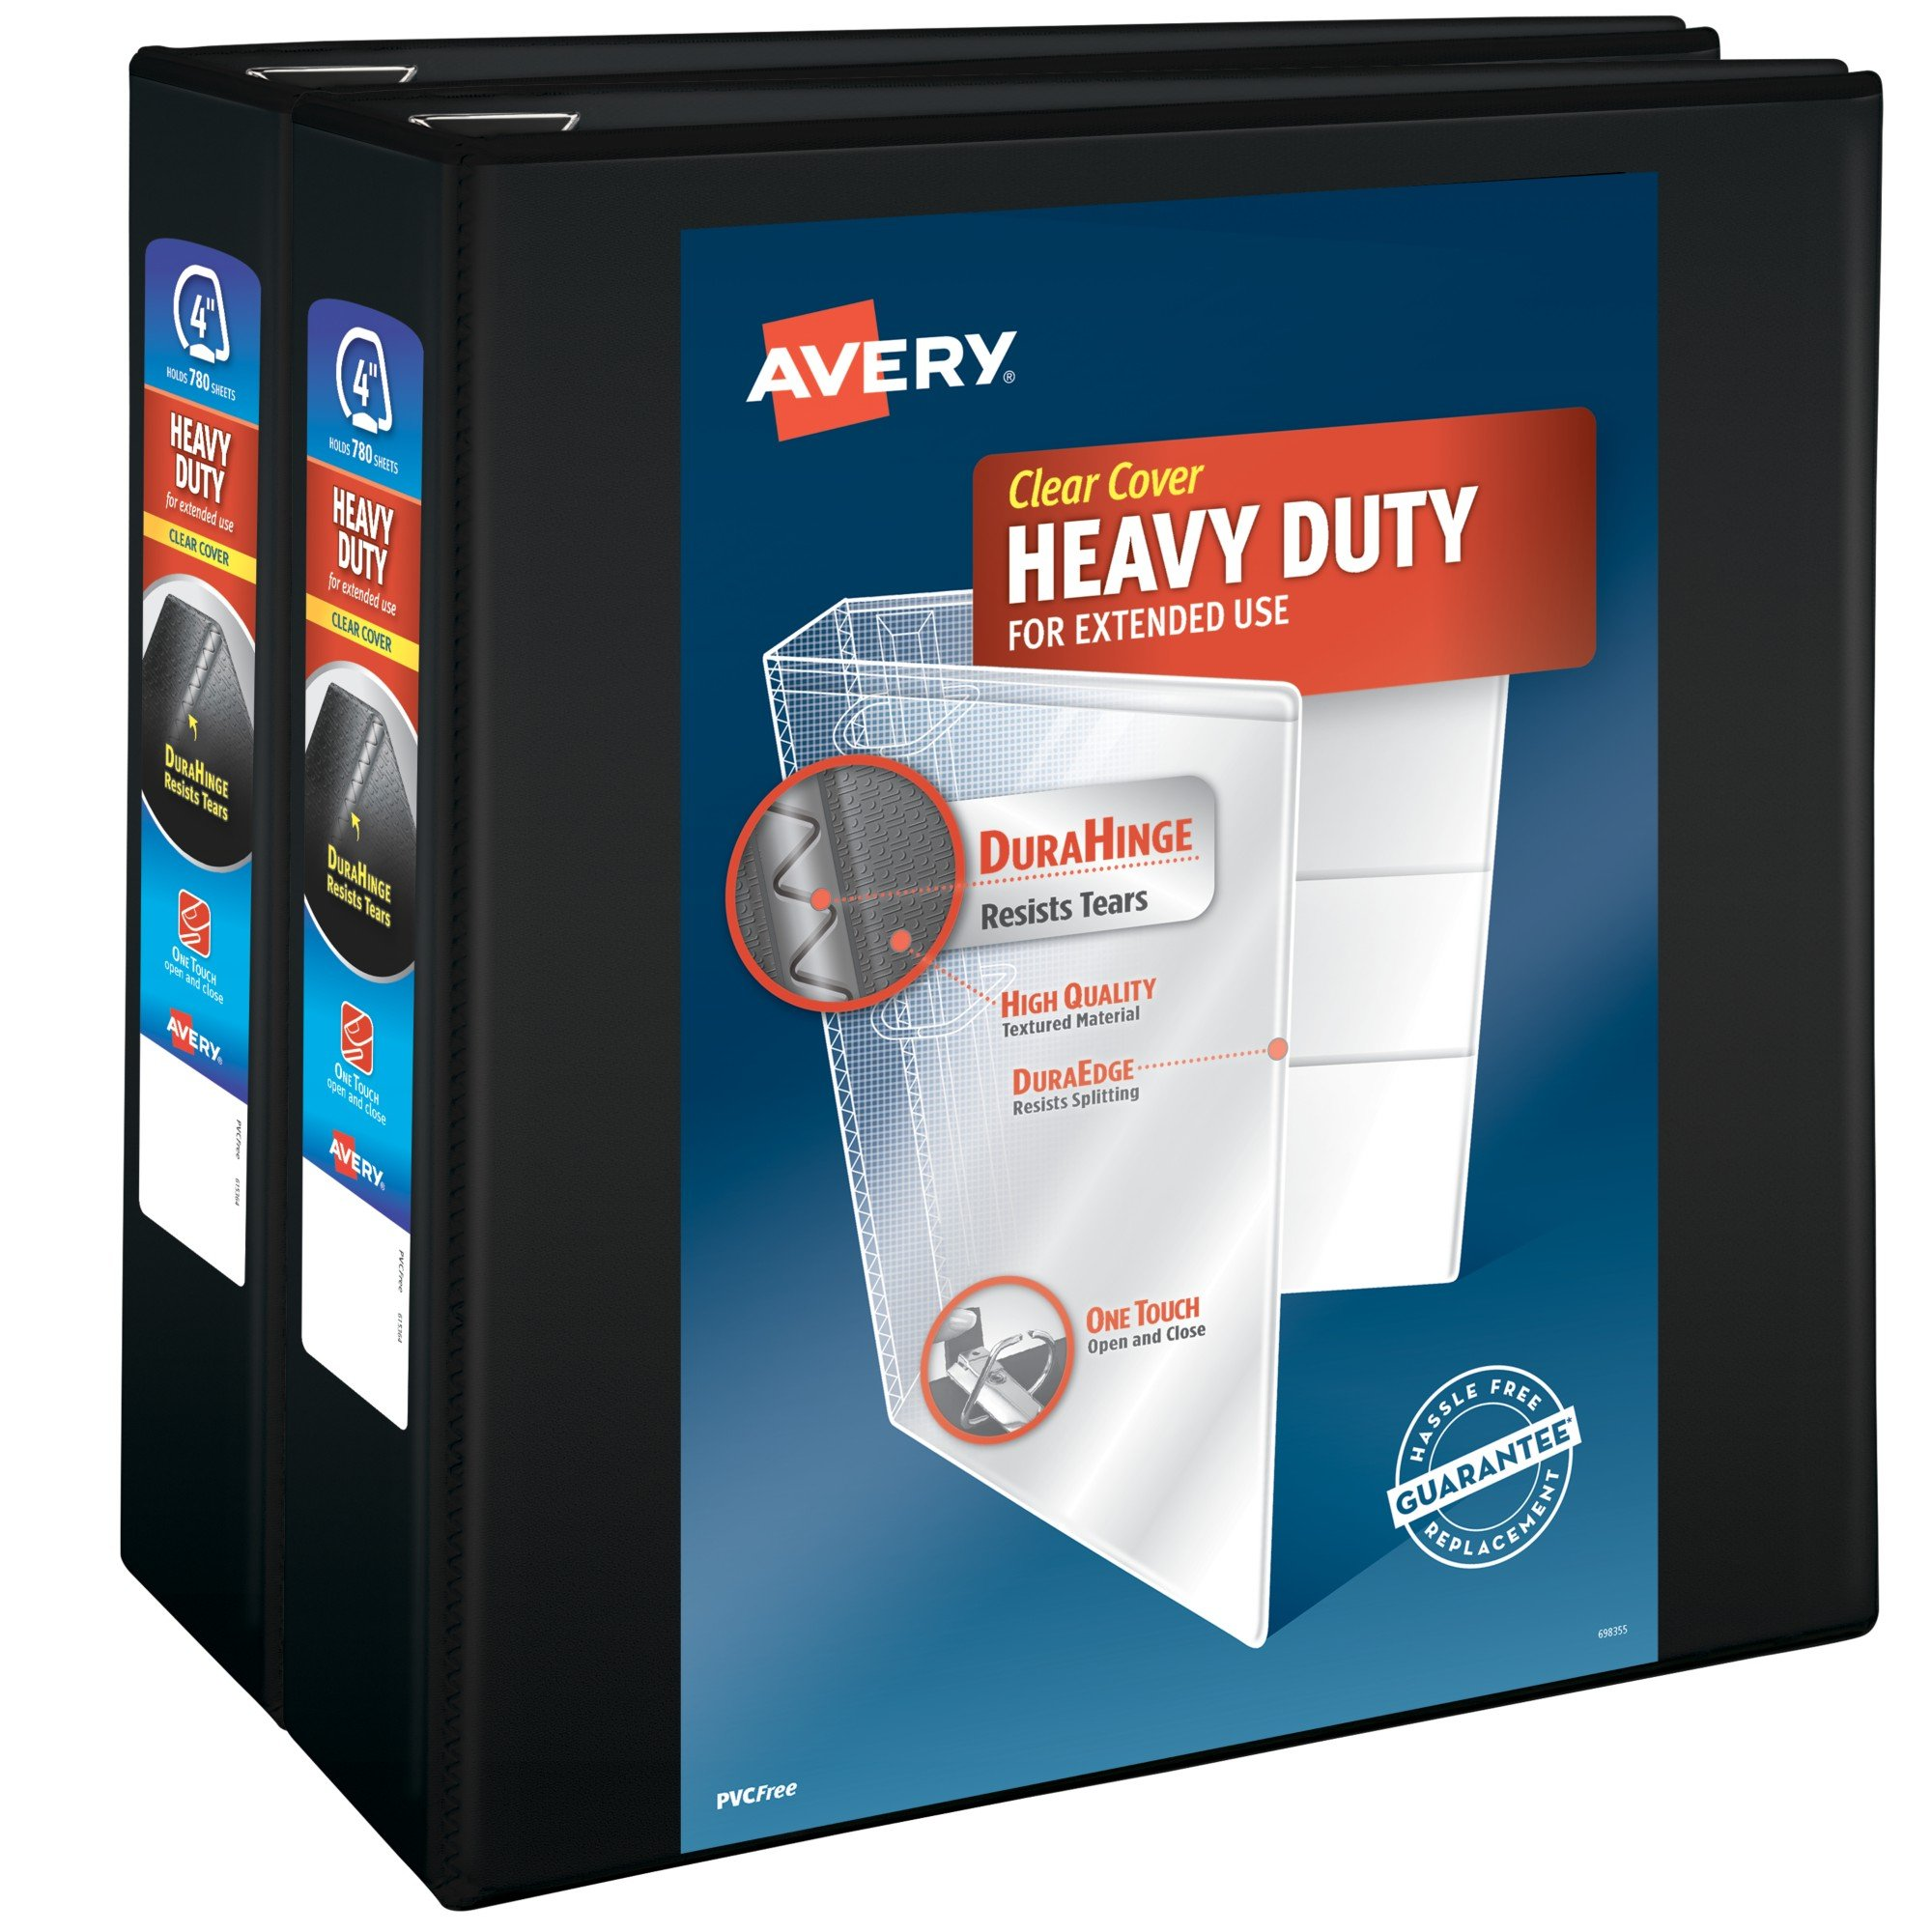 Avery Heavy-Duty View Binders, 4'' One-Touch Slant Rings, 700-Sheet Capacity, DuraHinge, Black, Pack of 2 Binders (79784)